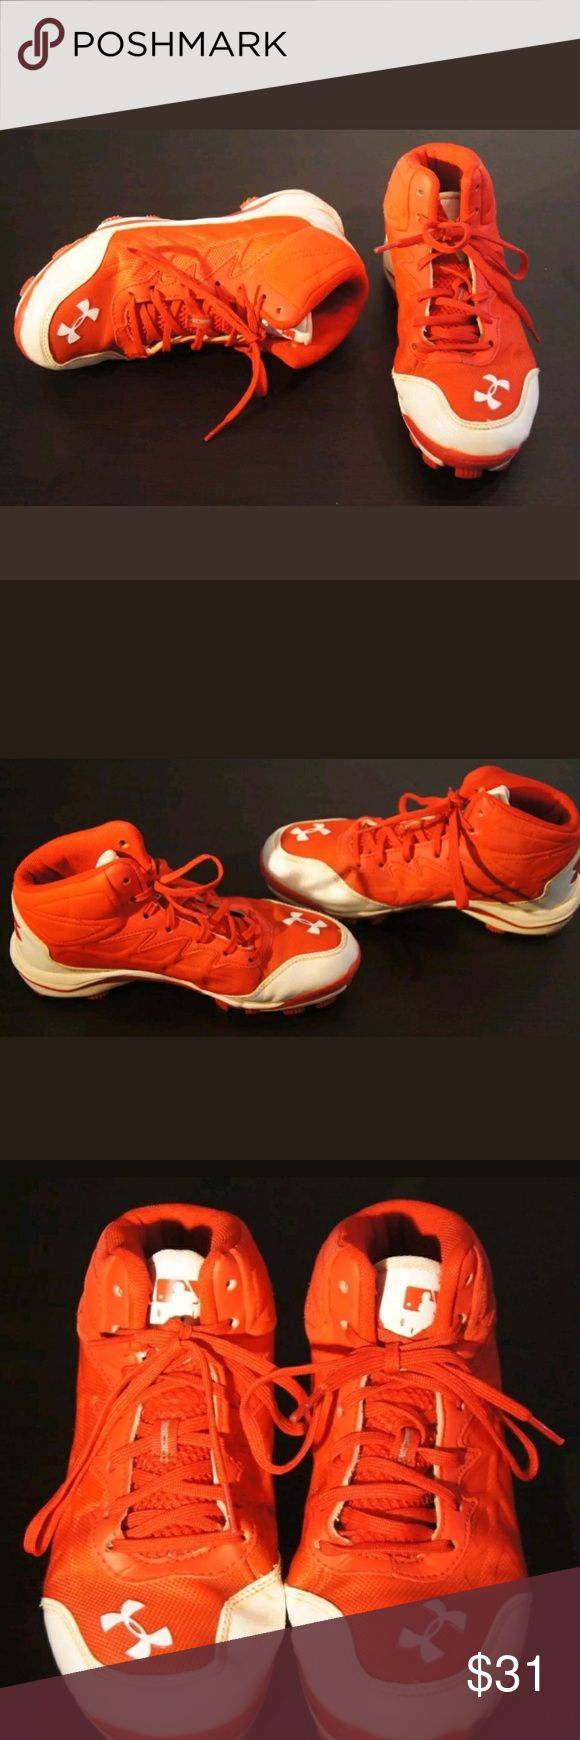 """UNDER ARMOUR BOUND BASEBALL SOFTBALL SPIKES CLEATS Imported.  Art. No. 1246696-611.  Euro size: 38.5.  Lace up.  Man made upper.  UPPER: Synthetic and Textile. UPPER LINING: Textile. OUTSOLE: Rubber.  Authentic Collection.  Rotational Traction.  Made them for athletes.  Without any rips or holes.  High quality.  Satisfaction guaranteed.  Great price.  Excellent purchase choice. You will not regret.  """"THEY HAVE A FEW LITTLE STAINS. PLEASE SEE PICTURES"""". Under Armour Shoes Sneakers"""